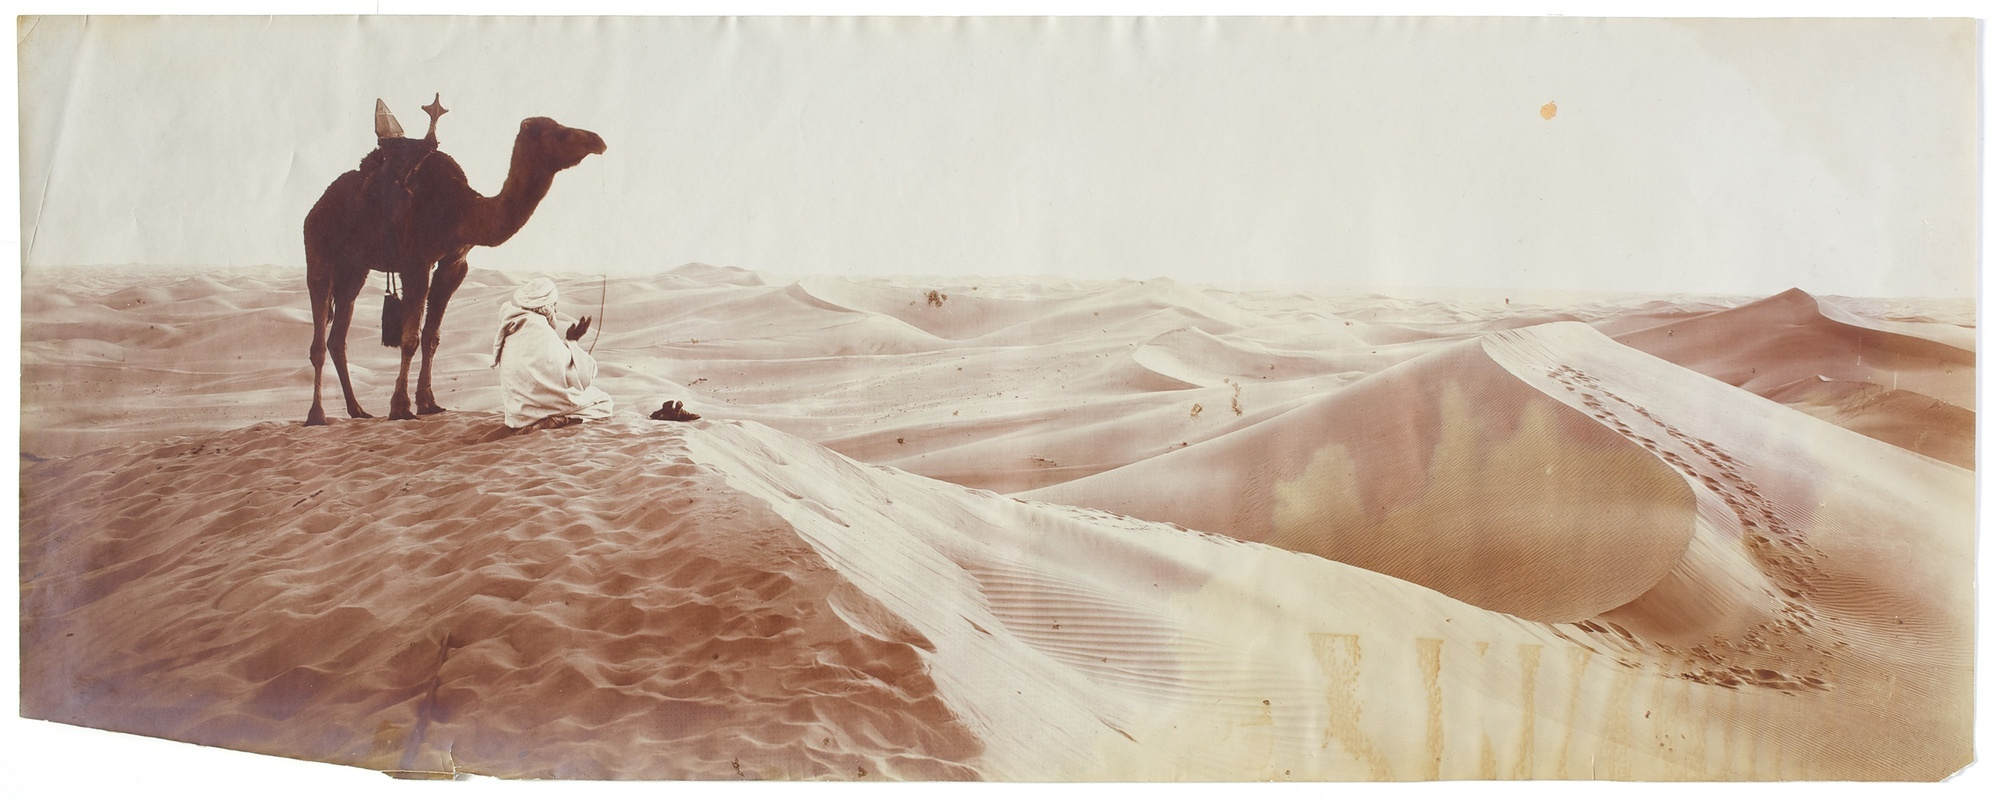 A vintage horizontal photograph of a vast desert landscape. A camel stands and a person sits atop a dune in the left foreground.